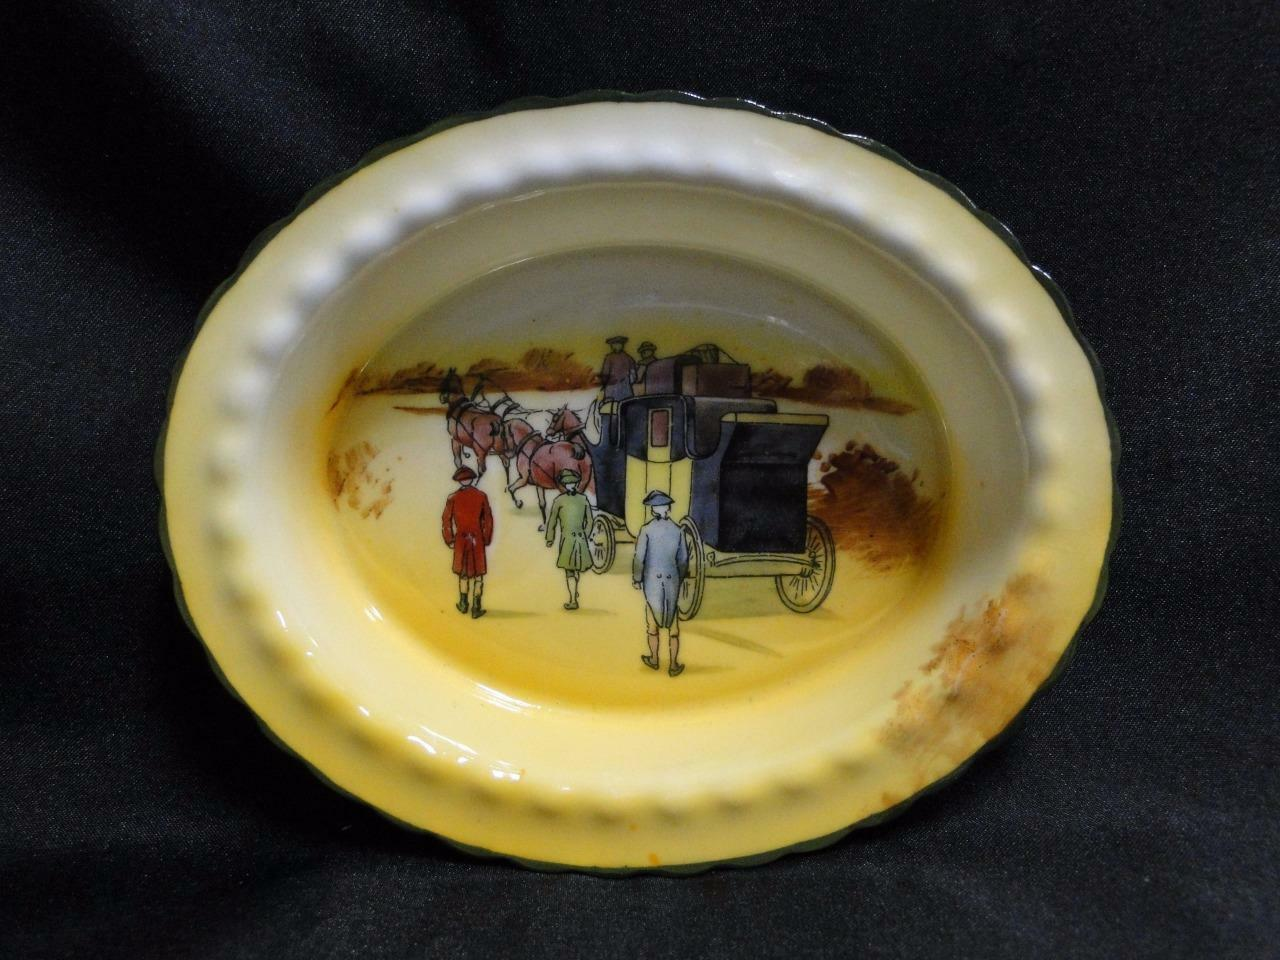 "Royal Doulton Coaching Days, Coach w/ 3 Men Walking: Nut Dish, 5 5/8"", 15c"